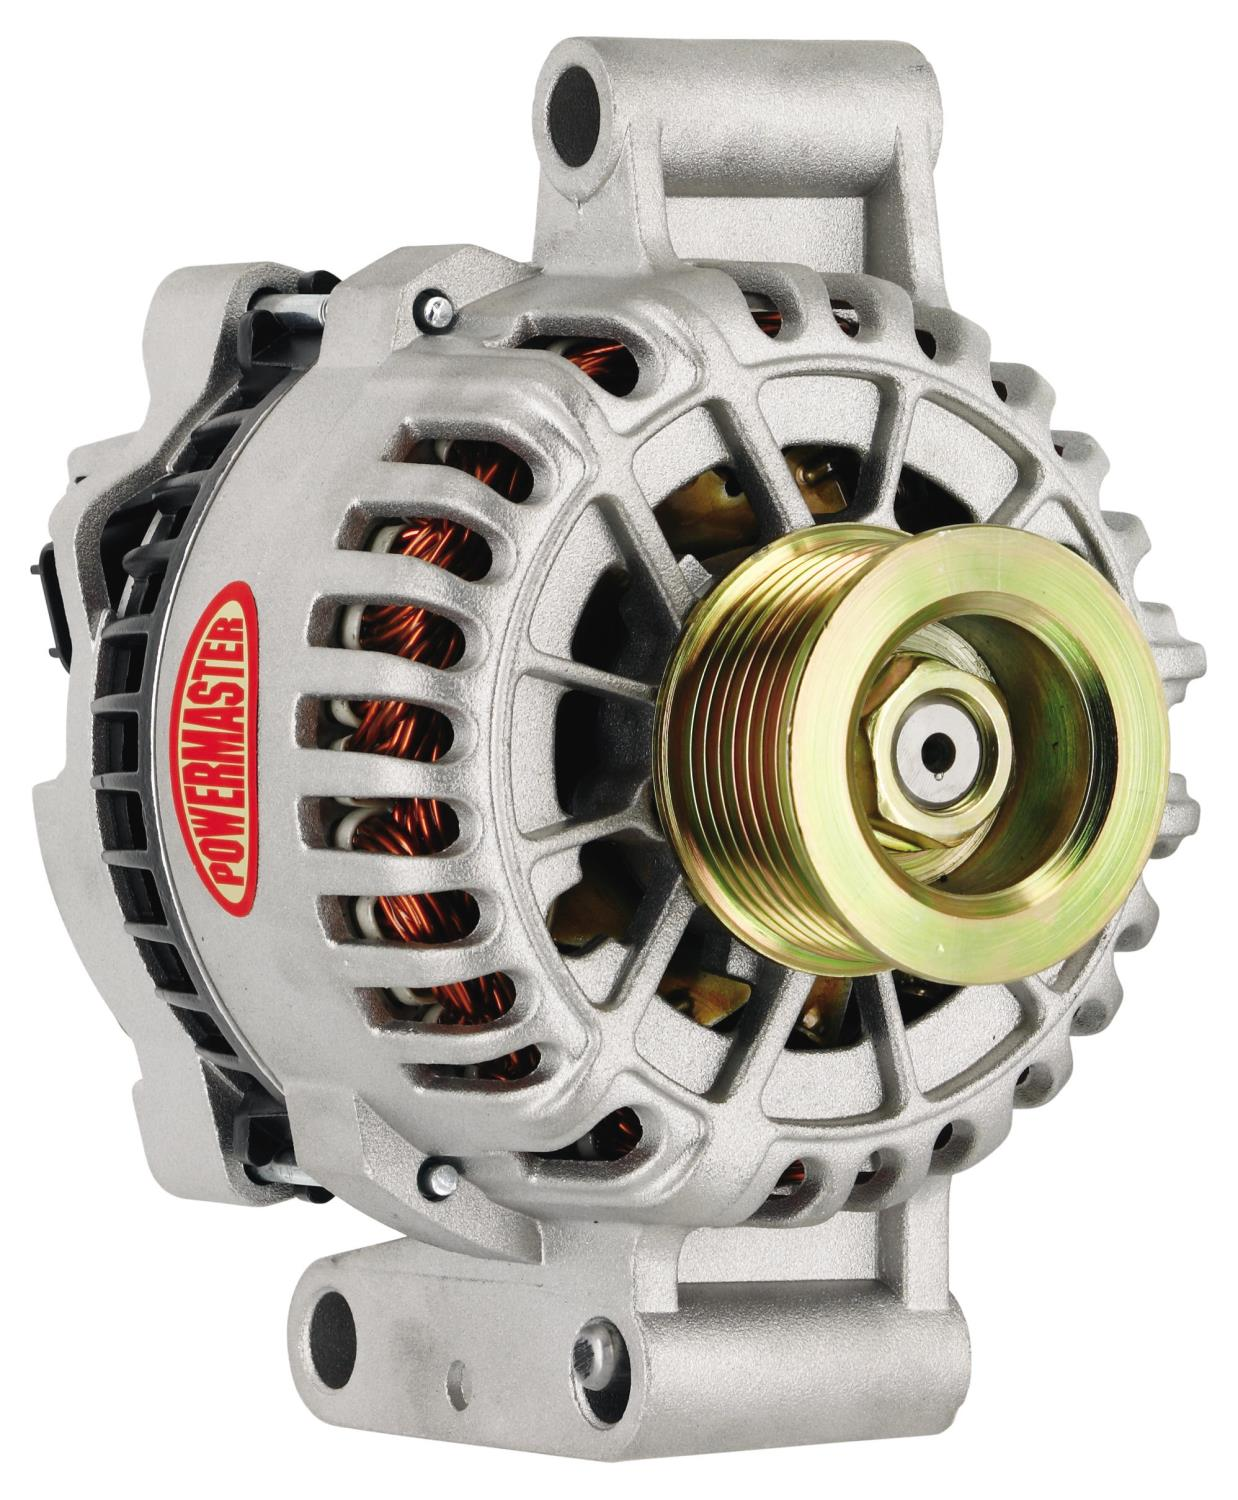 Powermaster 37796 - Powermaster Ford 6G Style Alternators